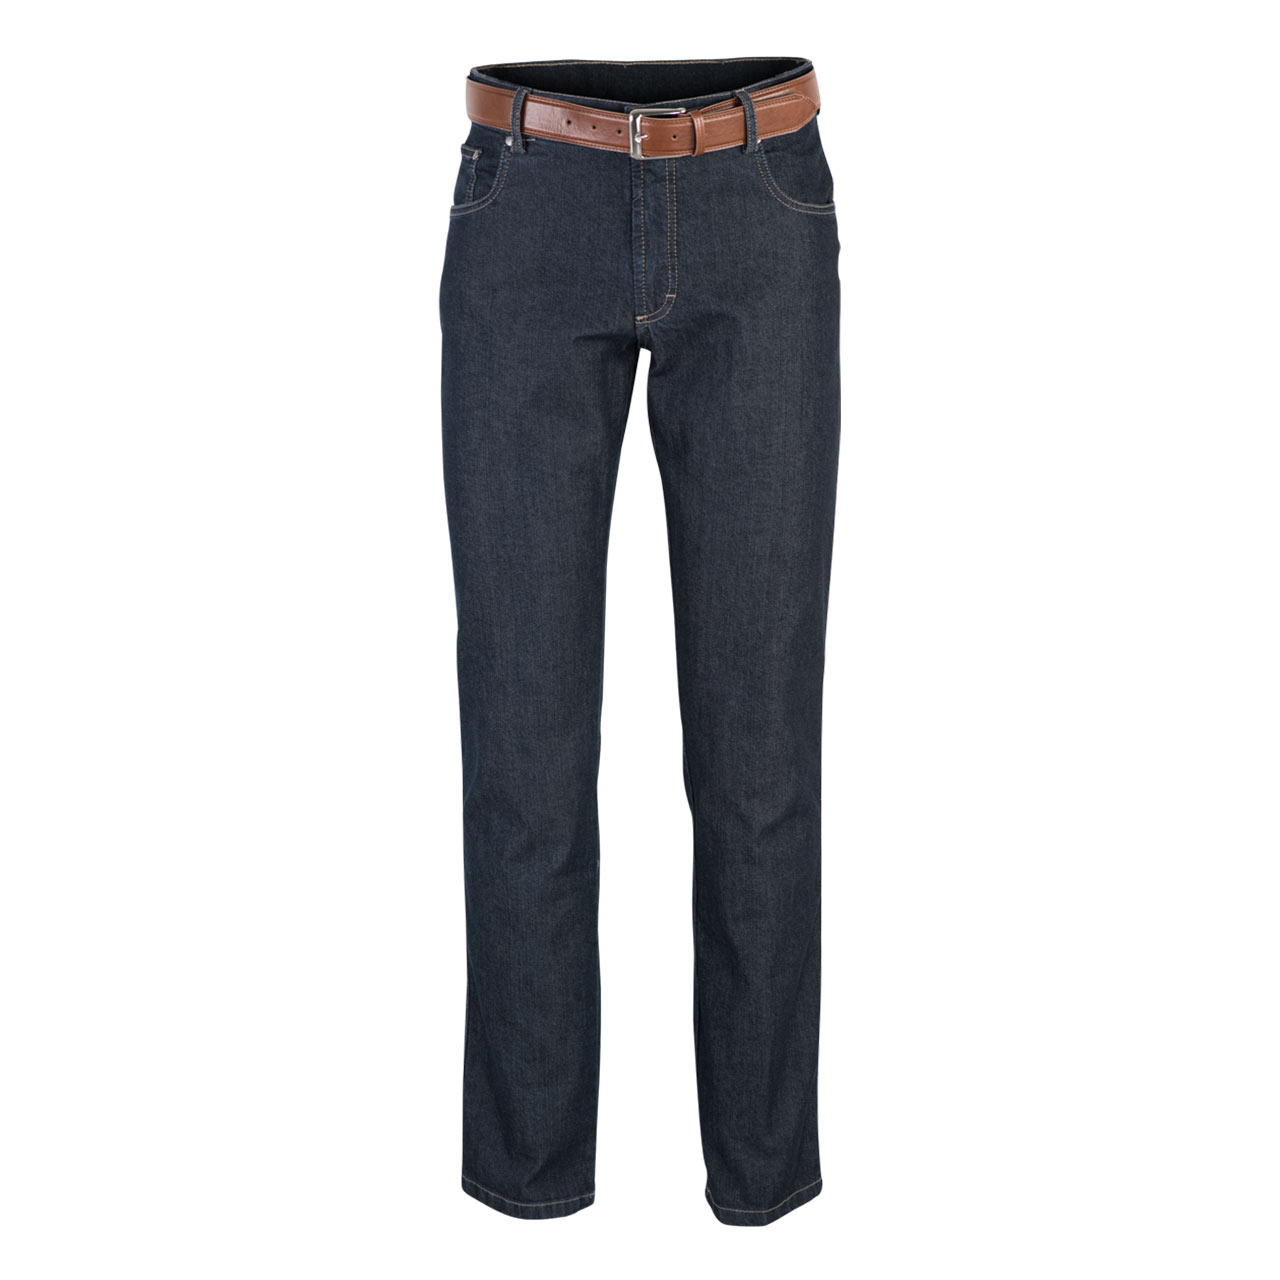 Pitcher Outdoor Jeans